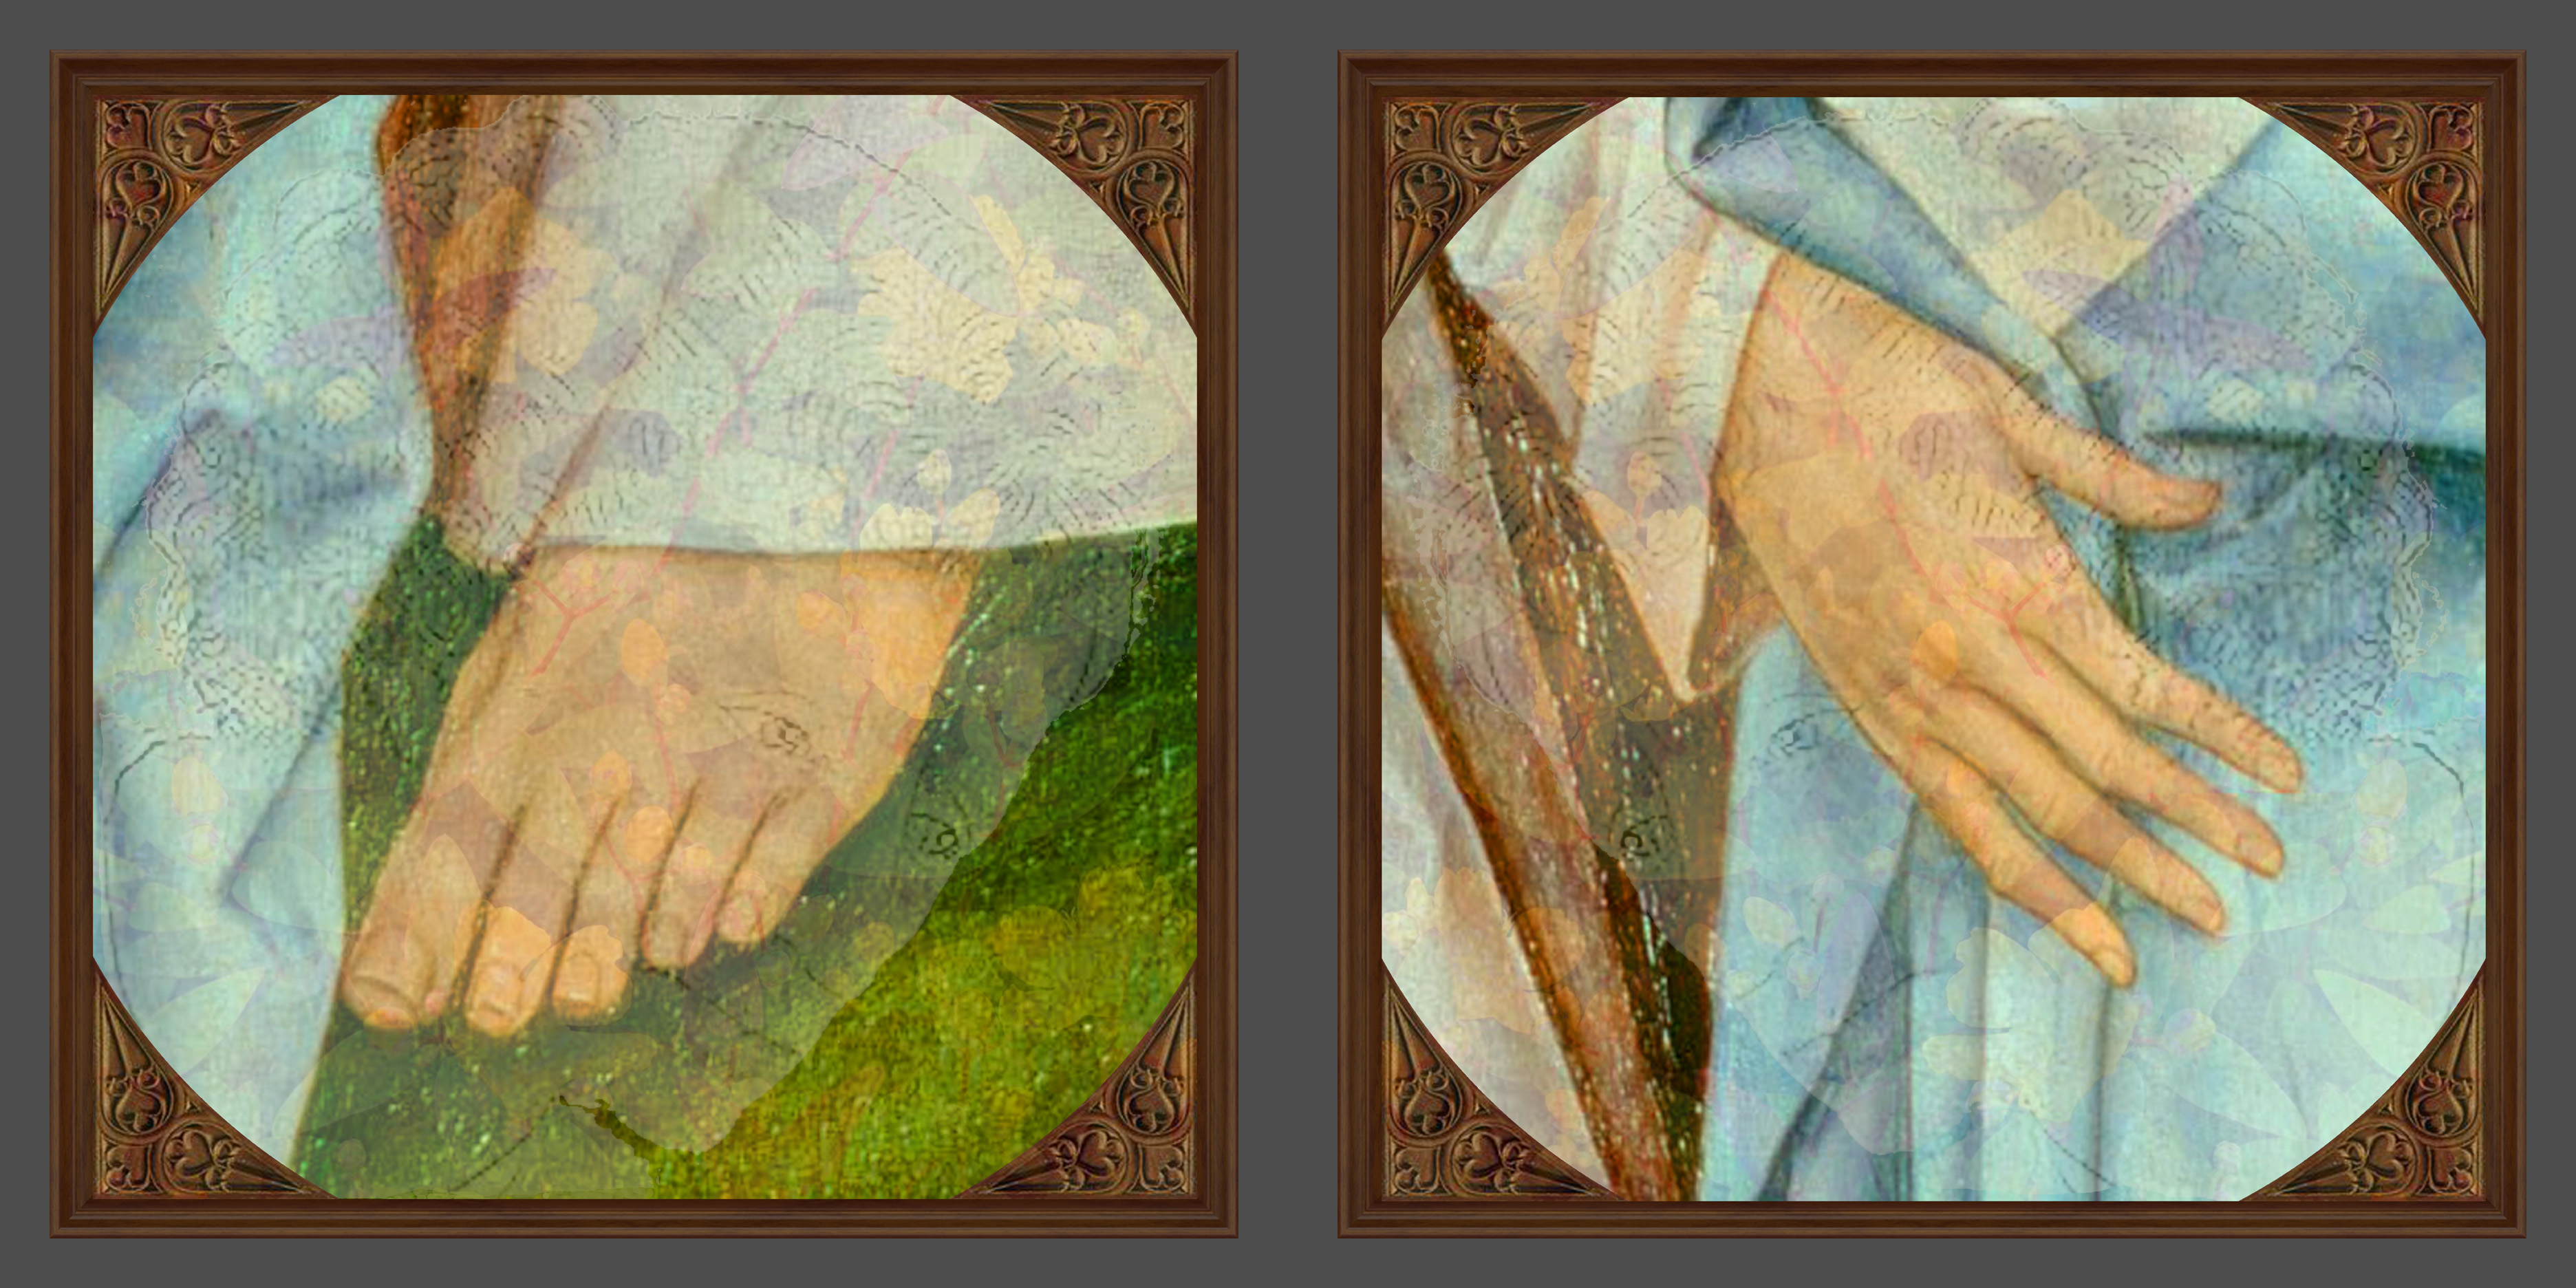 Taking Care artwork by F T Kettering - art listed for sale on Artplode